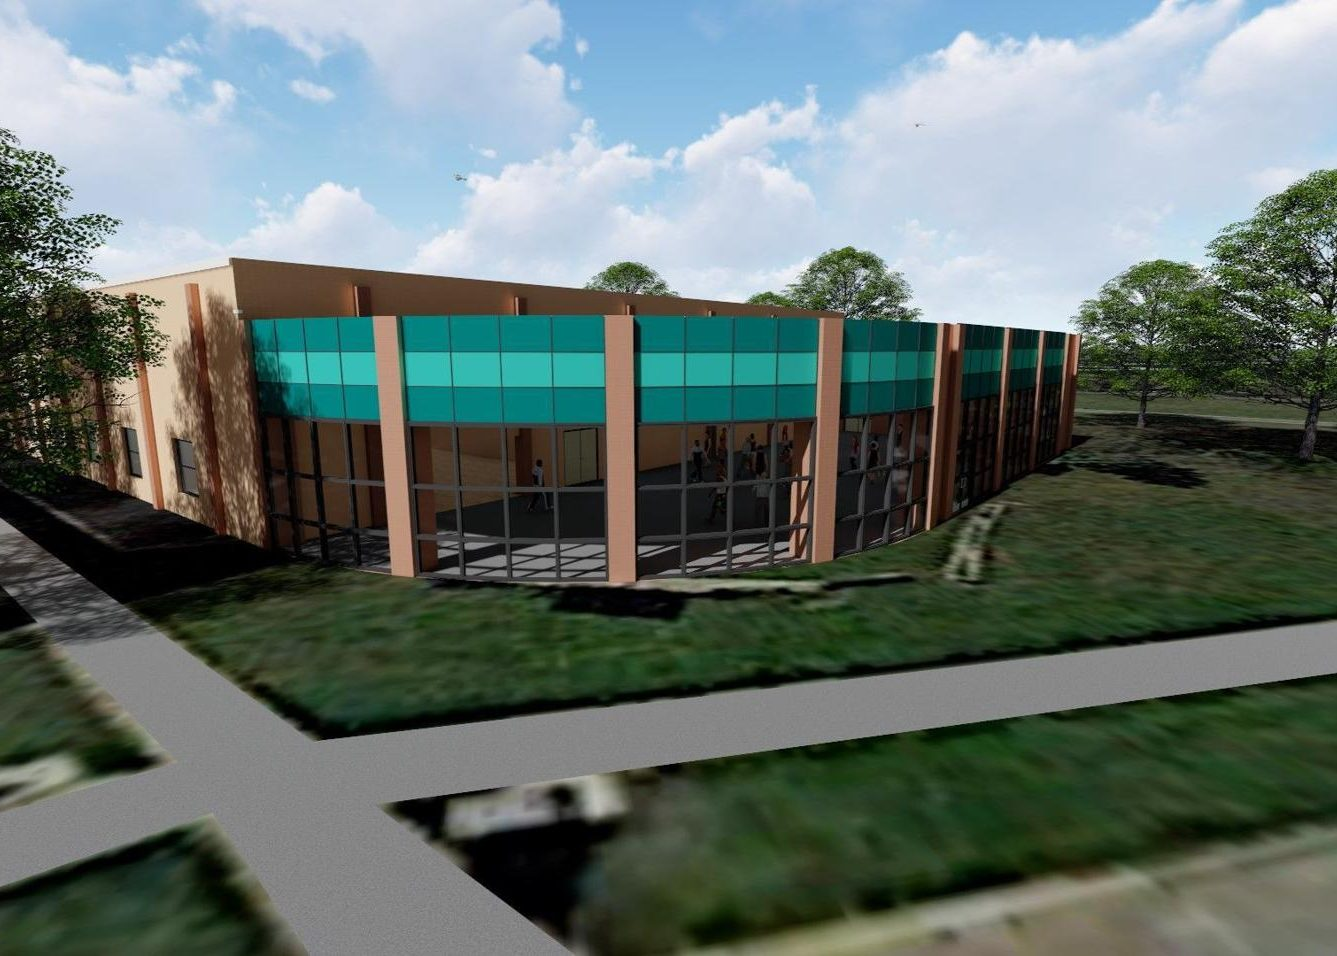 A rendering of the Hammond Family YMCA after renovations to the exterior. An anonymous donor is pledging $500,000 to the capital campaign for the $3.5 million project.